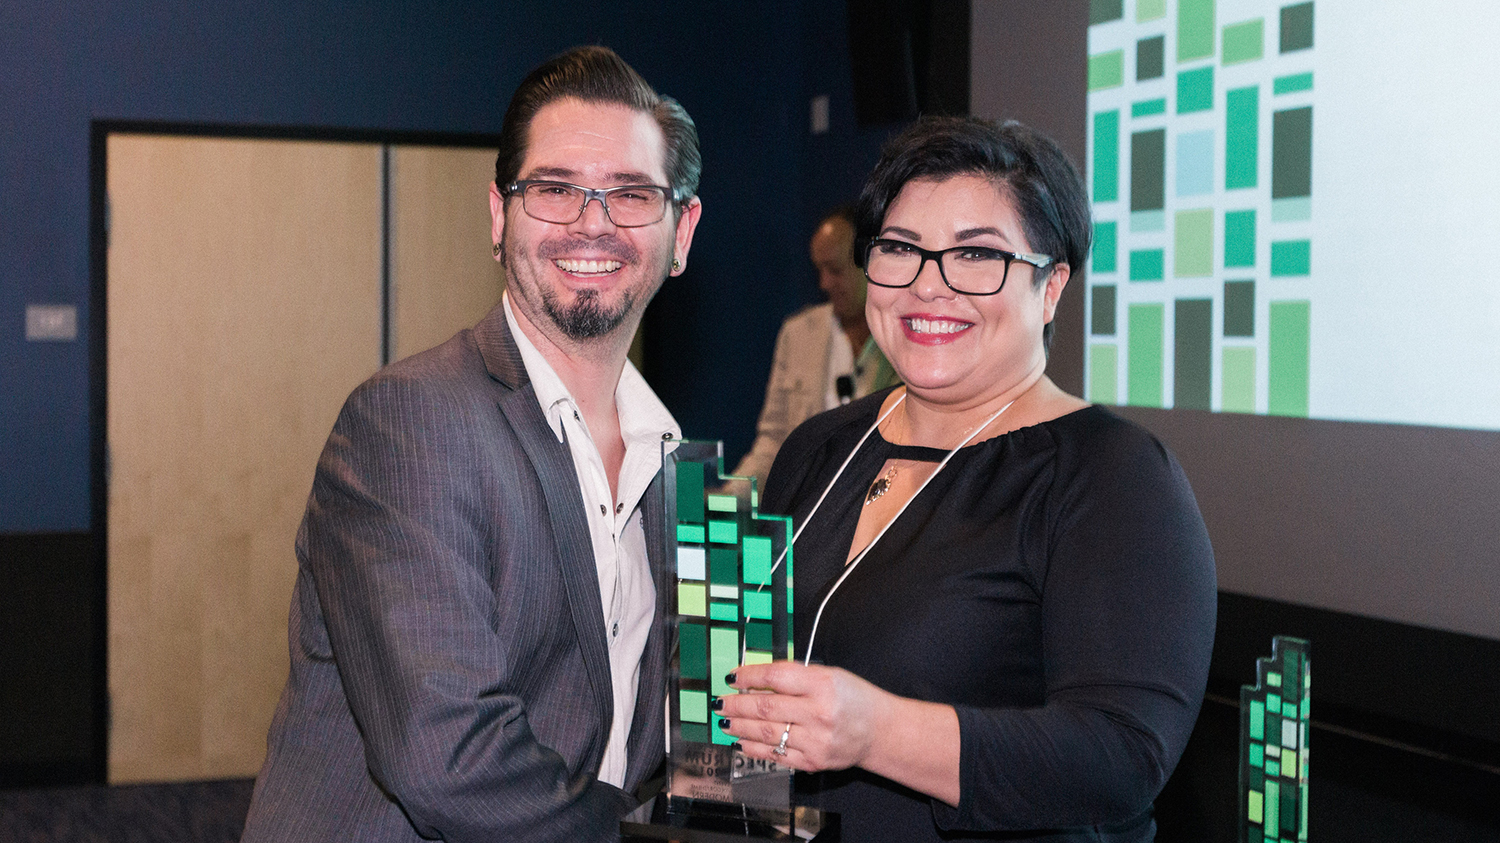 Mike Goldner, Director of E-Commerce at Artisan Colour, accepts 2017 AMA Spectrum Award for Best Event Staging from AMA Phoenix Chapter President, Evelyn Vega